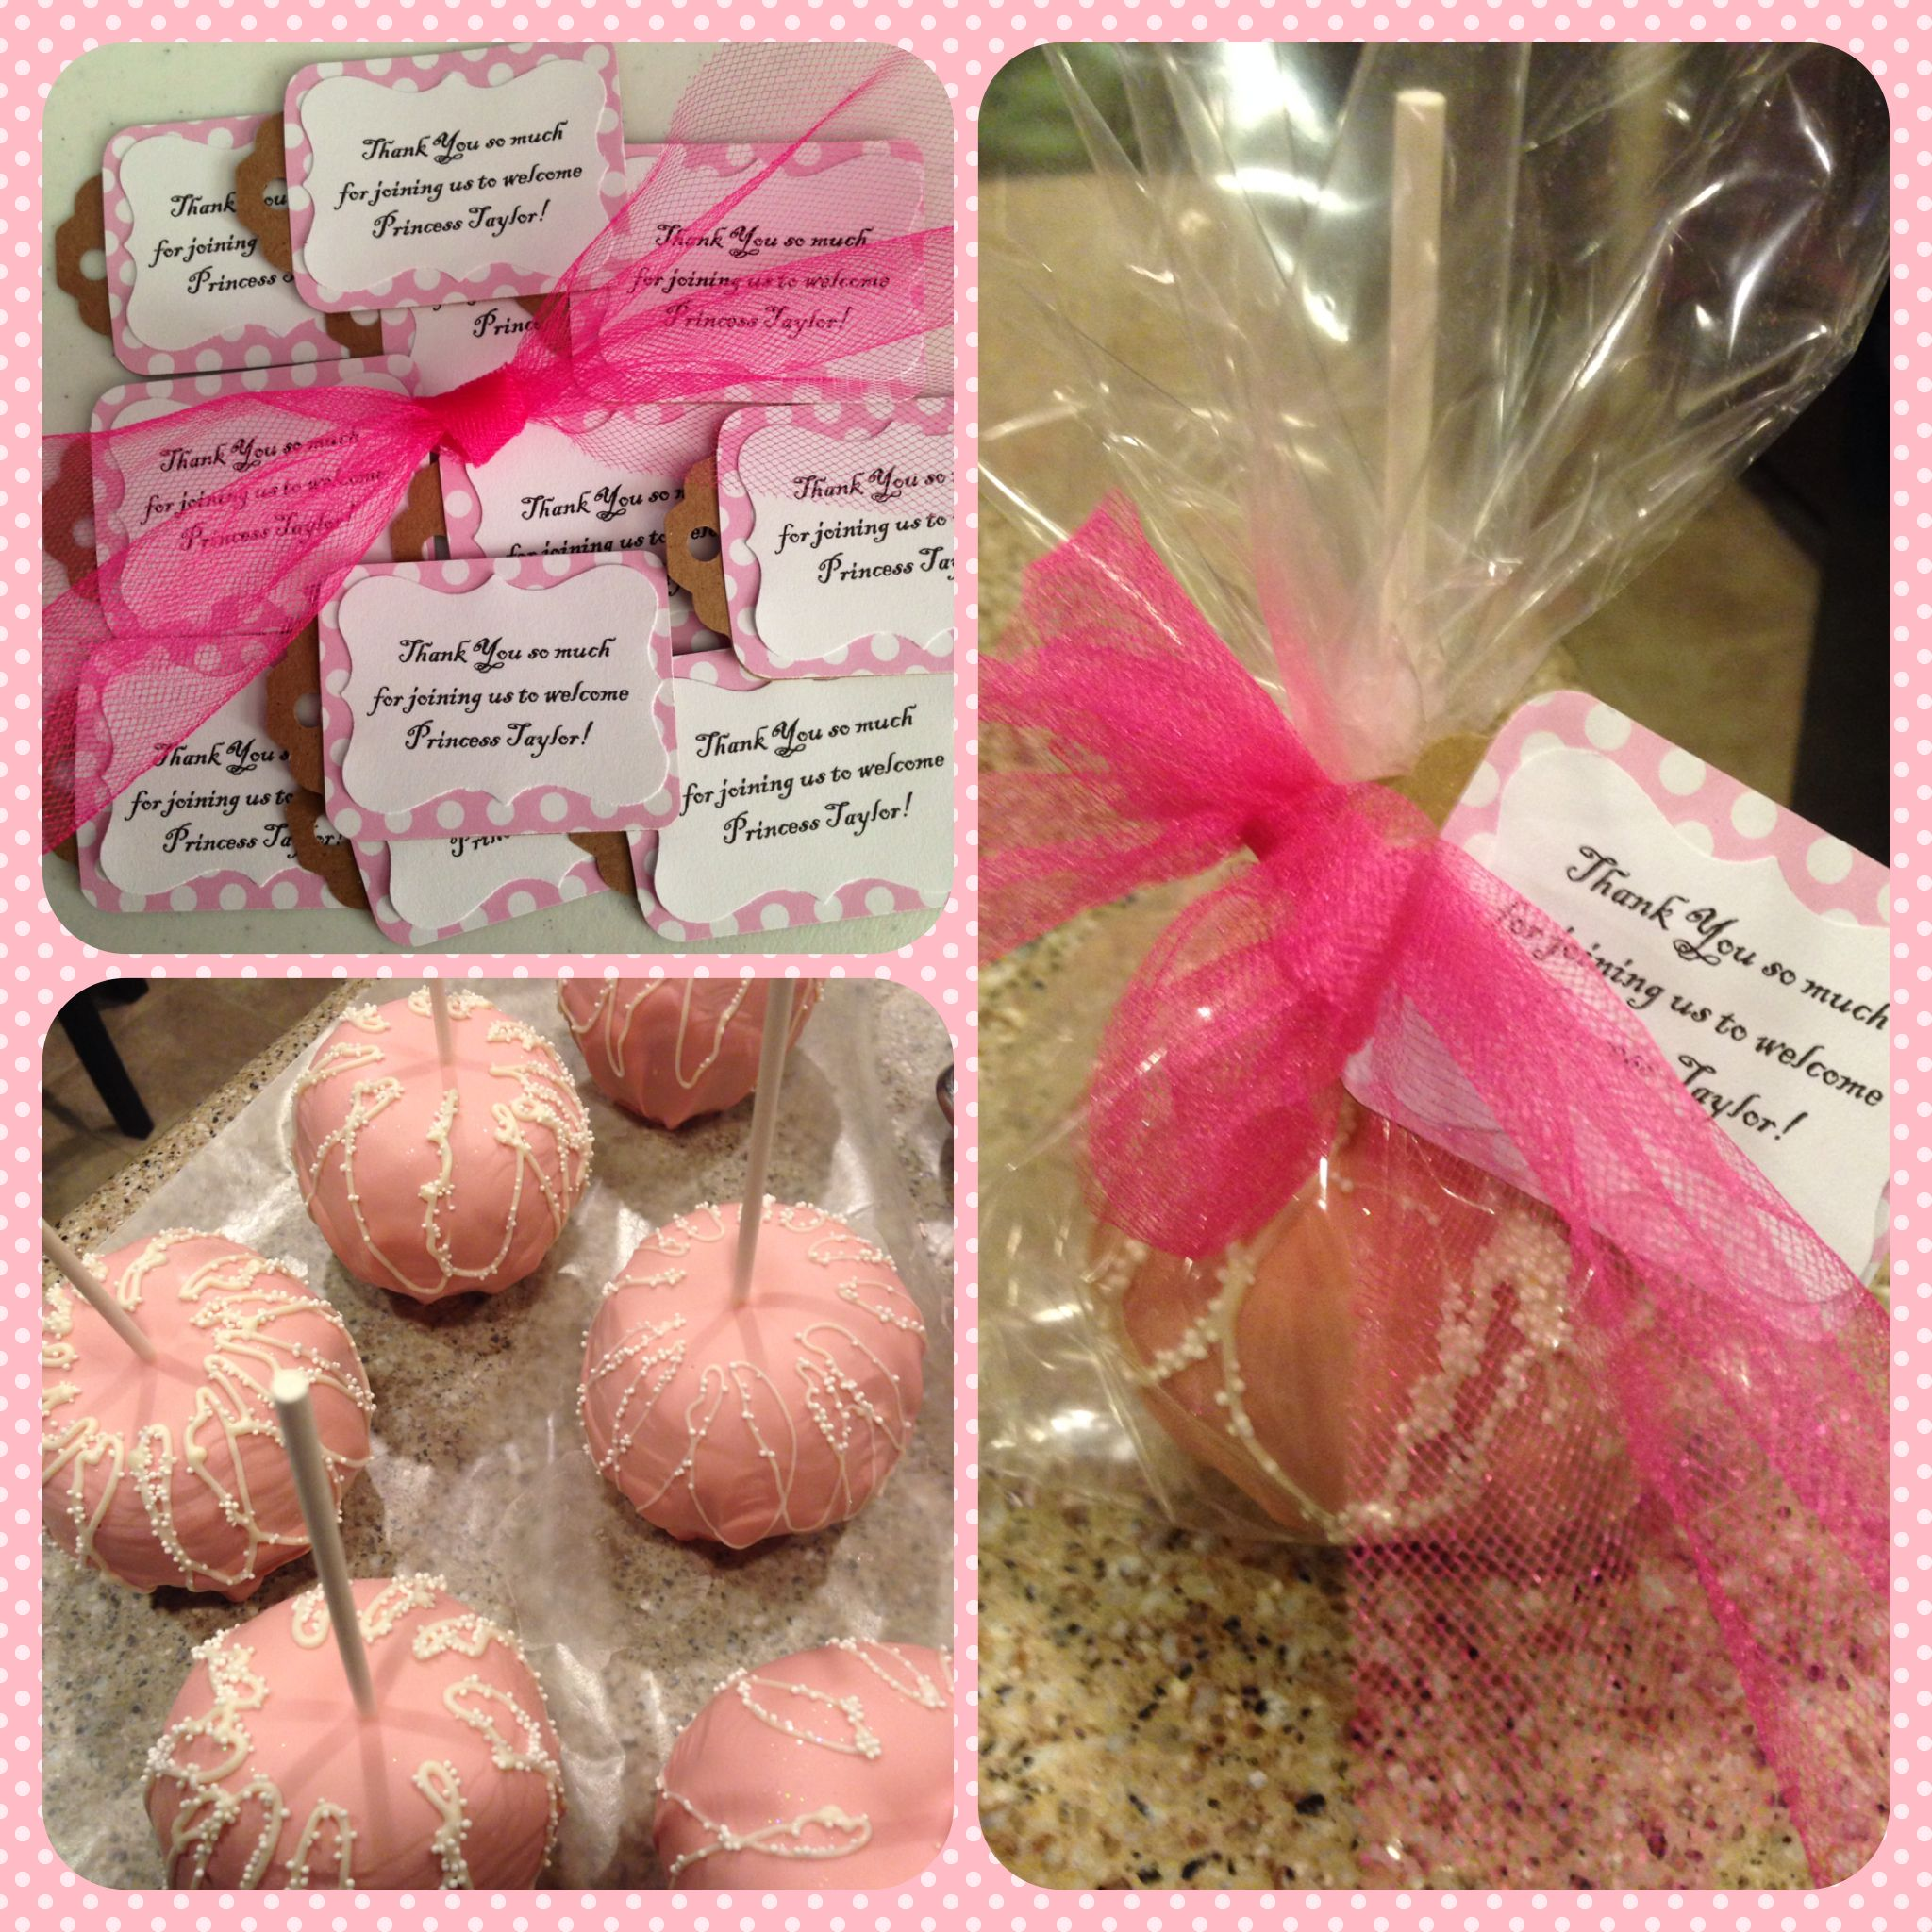 Pink Candy Apples for a Princess Baby Shower | Sweet \'stache Treats ...